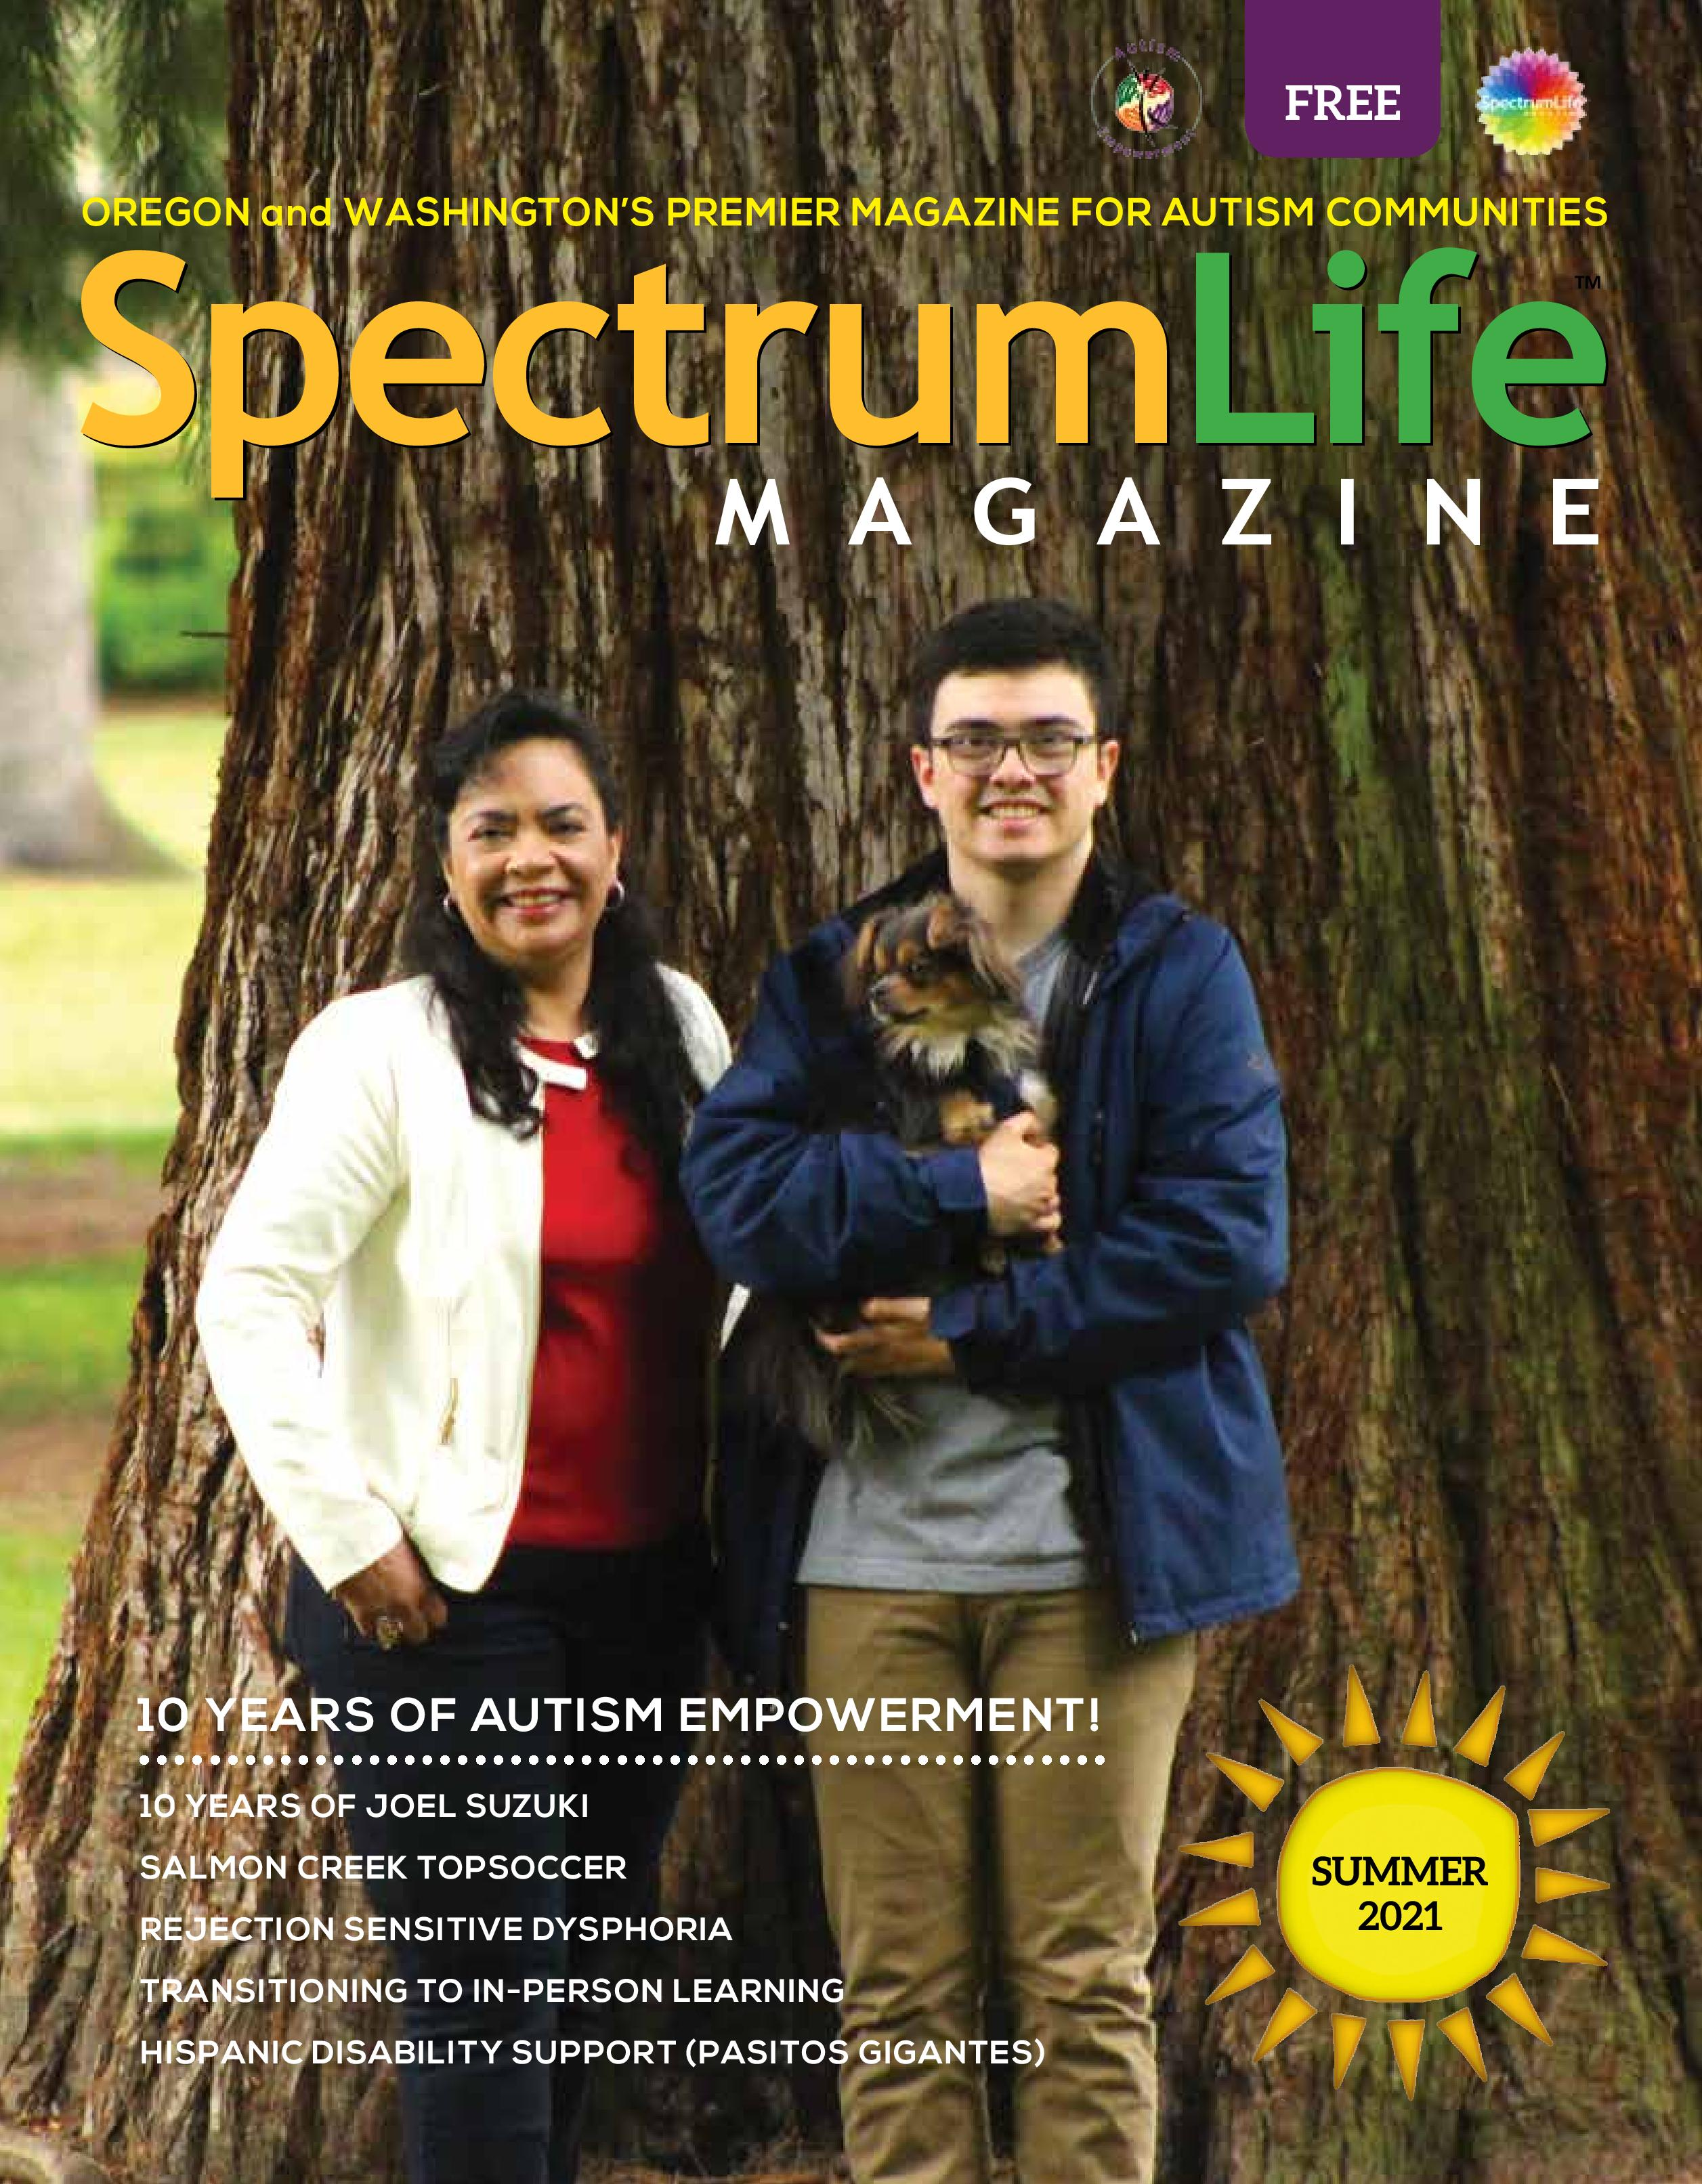 Summer 2021 Cover of Spectrum Life Magazine from Autism Empowerment